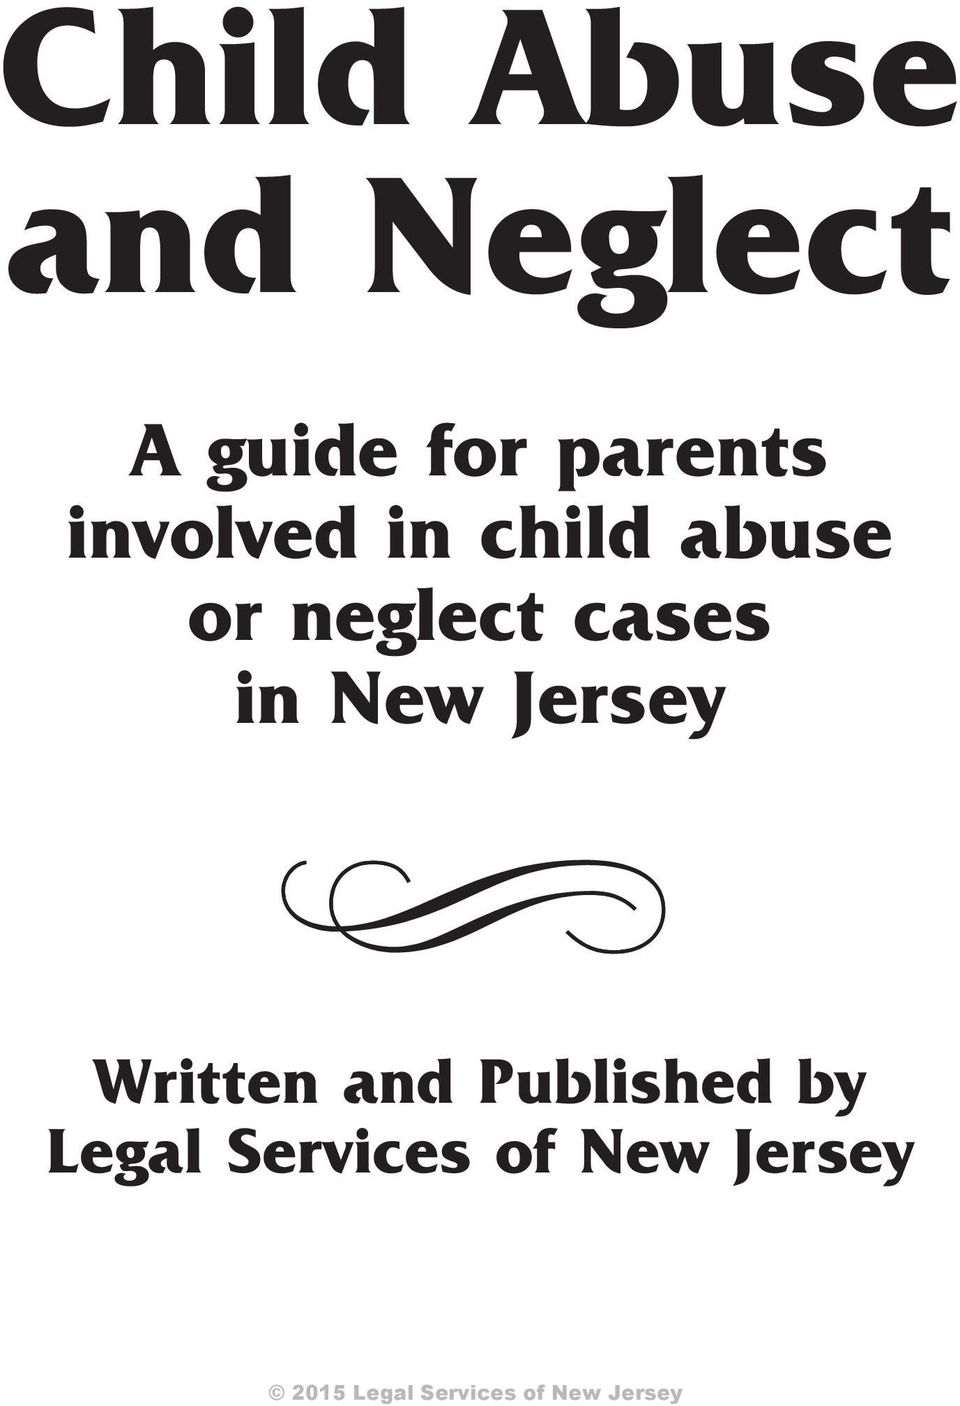 neglect cases in New Jersey Written